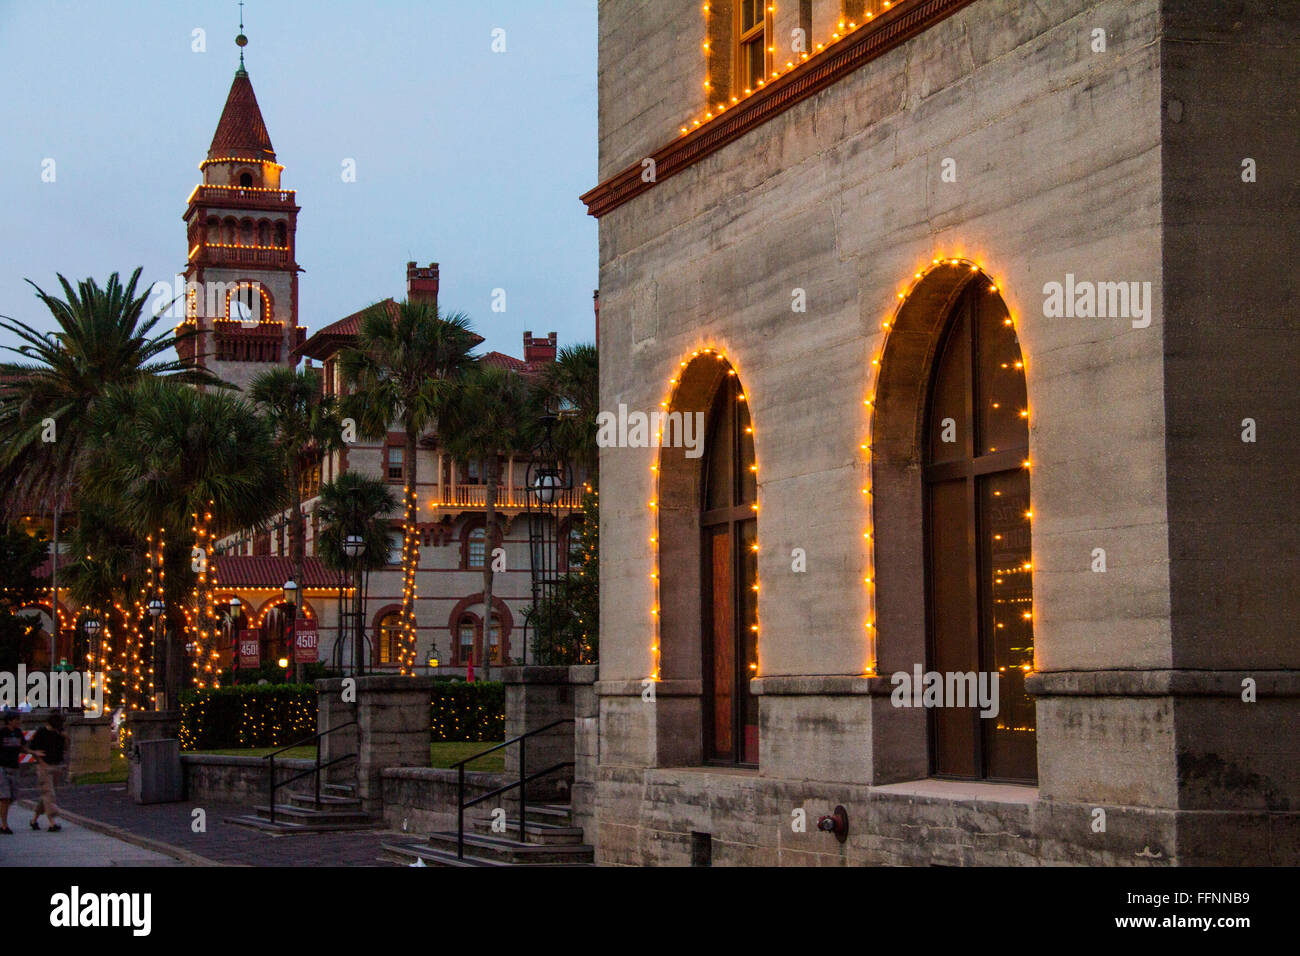 Tracing the Spanish tradition of displaying white candles at Christmas season, St Augustine's 'Nights of - Stock Image